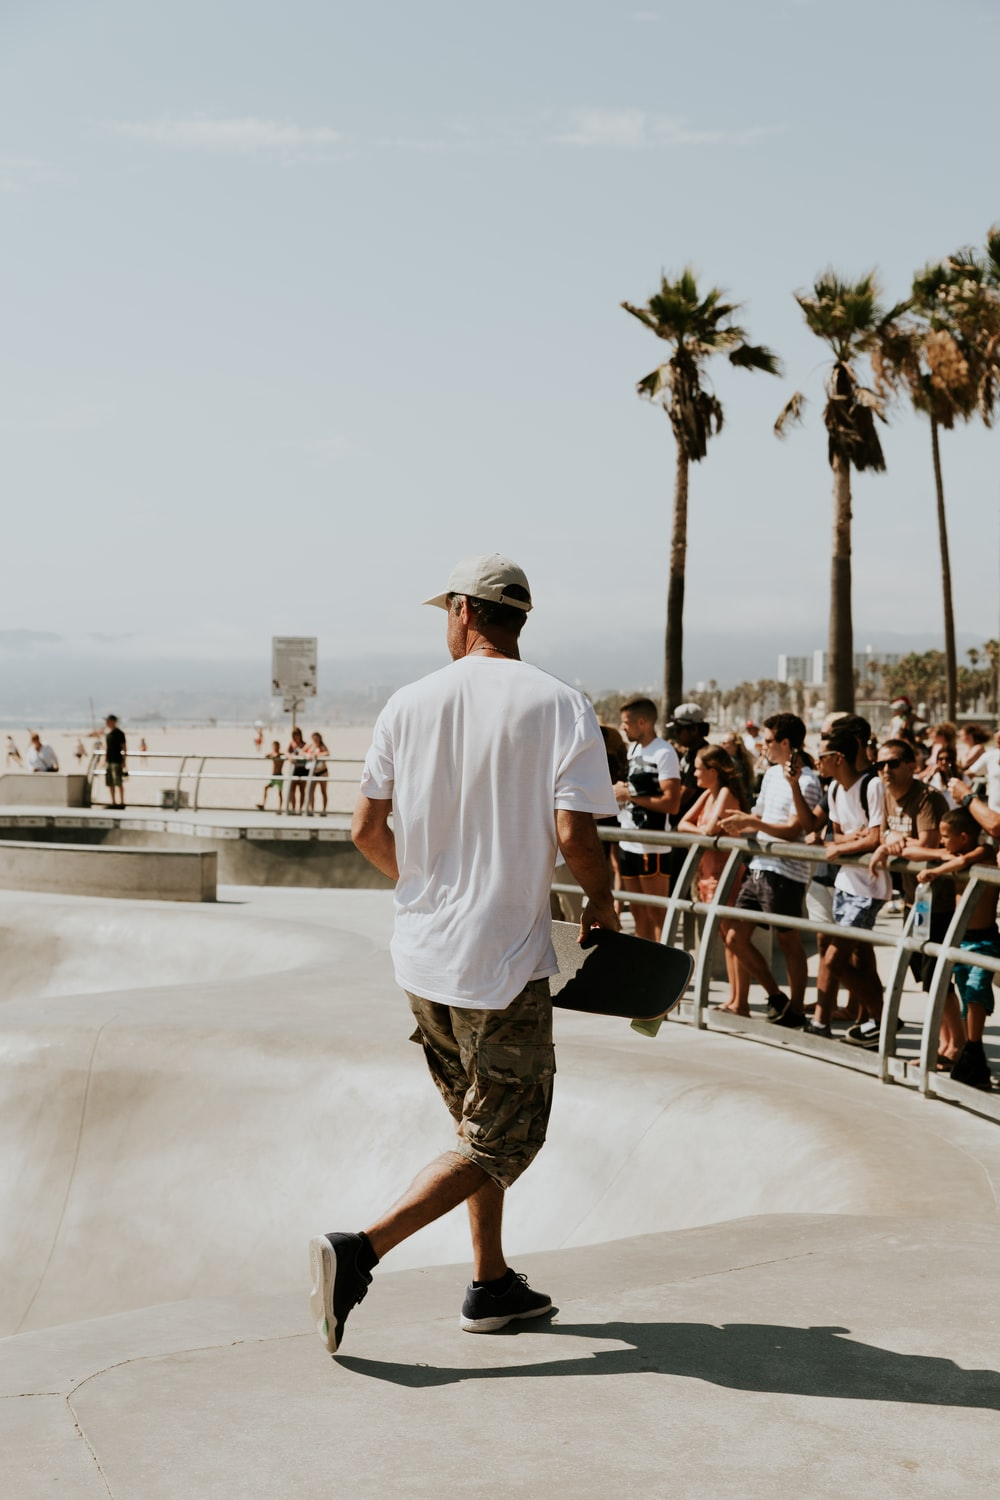 man in white shirt holding skateboard